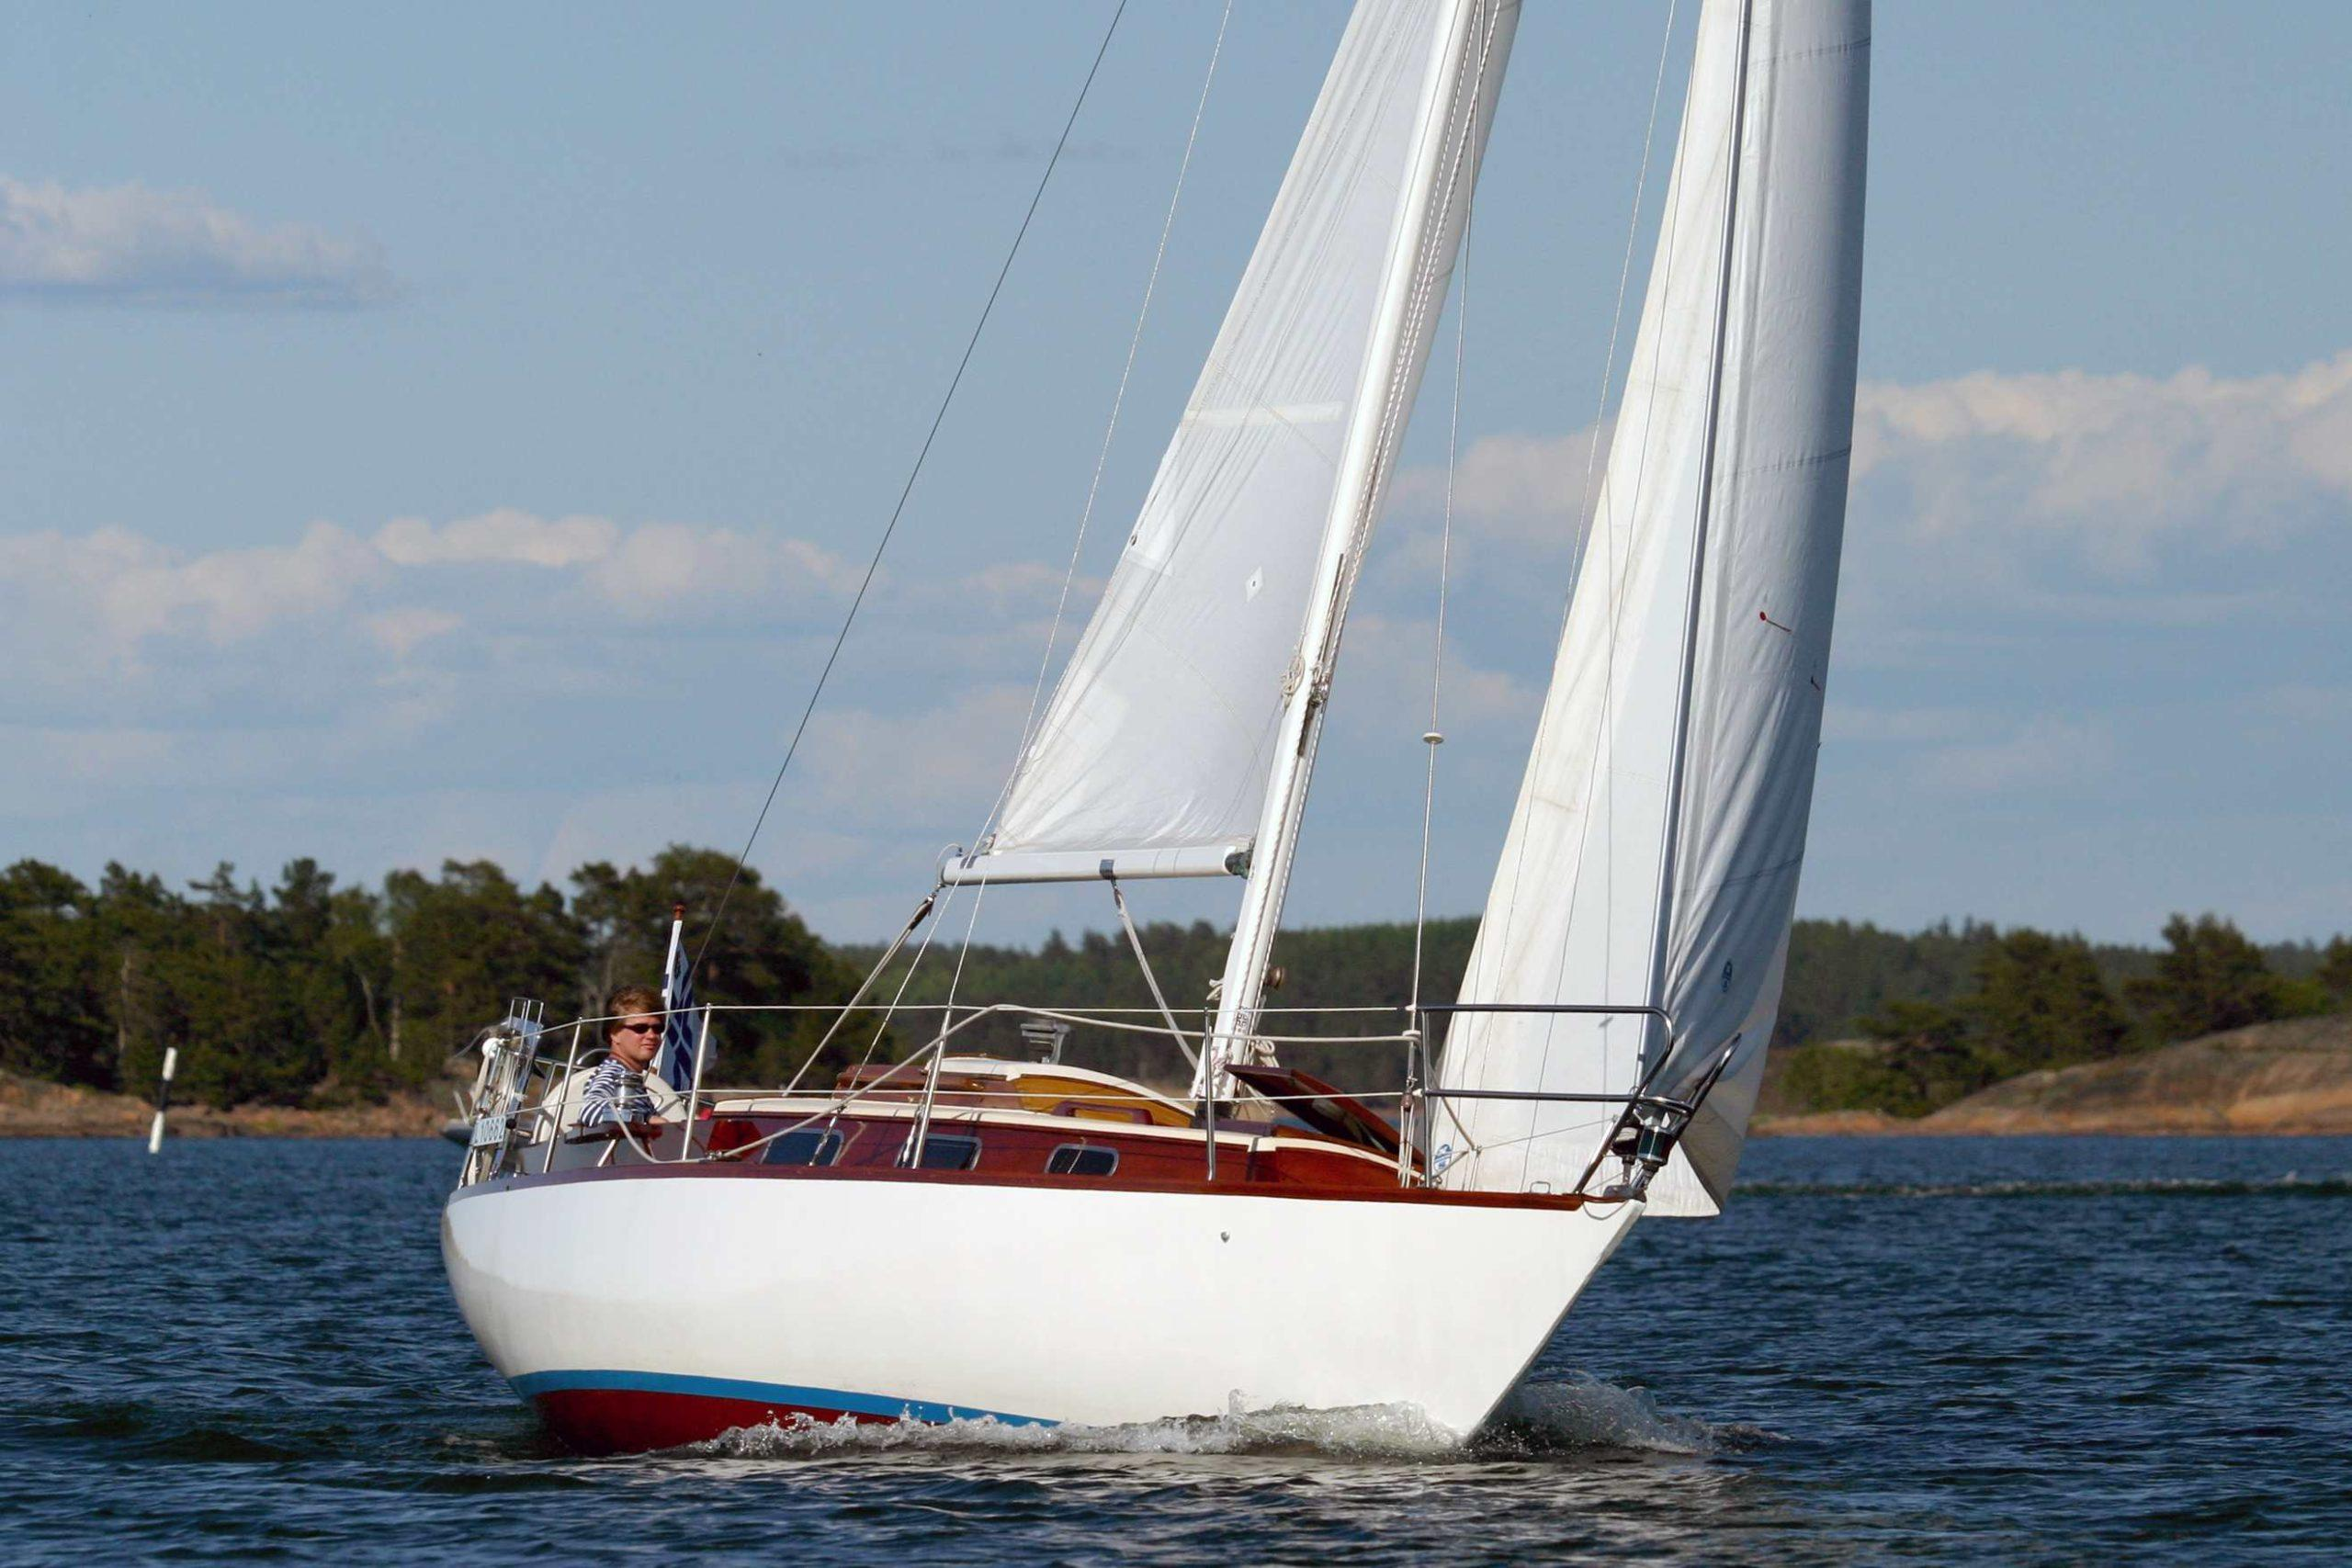 One Off (RORC avomerivene, 0,5 ton) Finngirl OR L-104